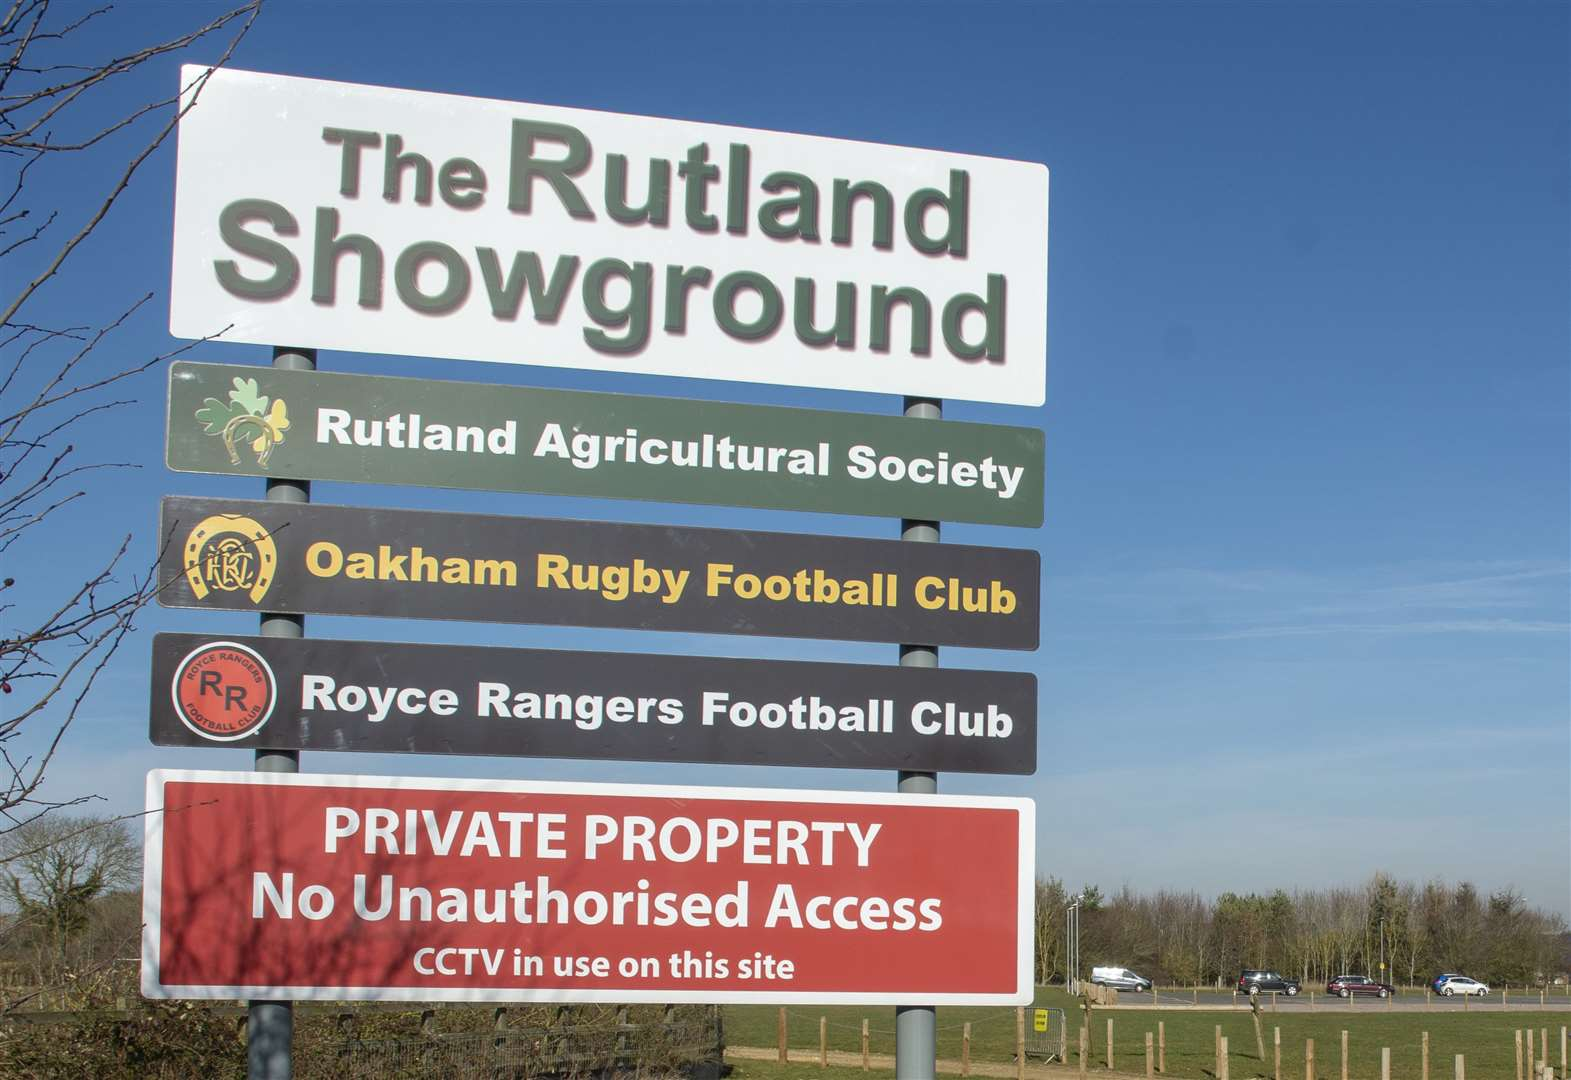 Free event being hosted at Rutland Showground is aimed at disabled people who need help to live independently